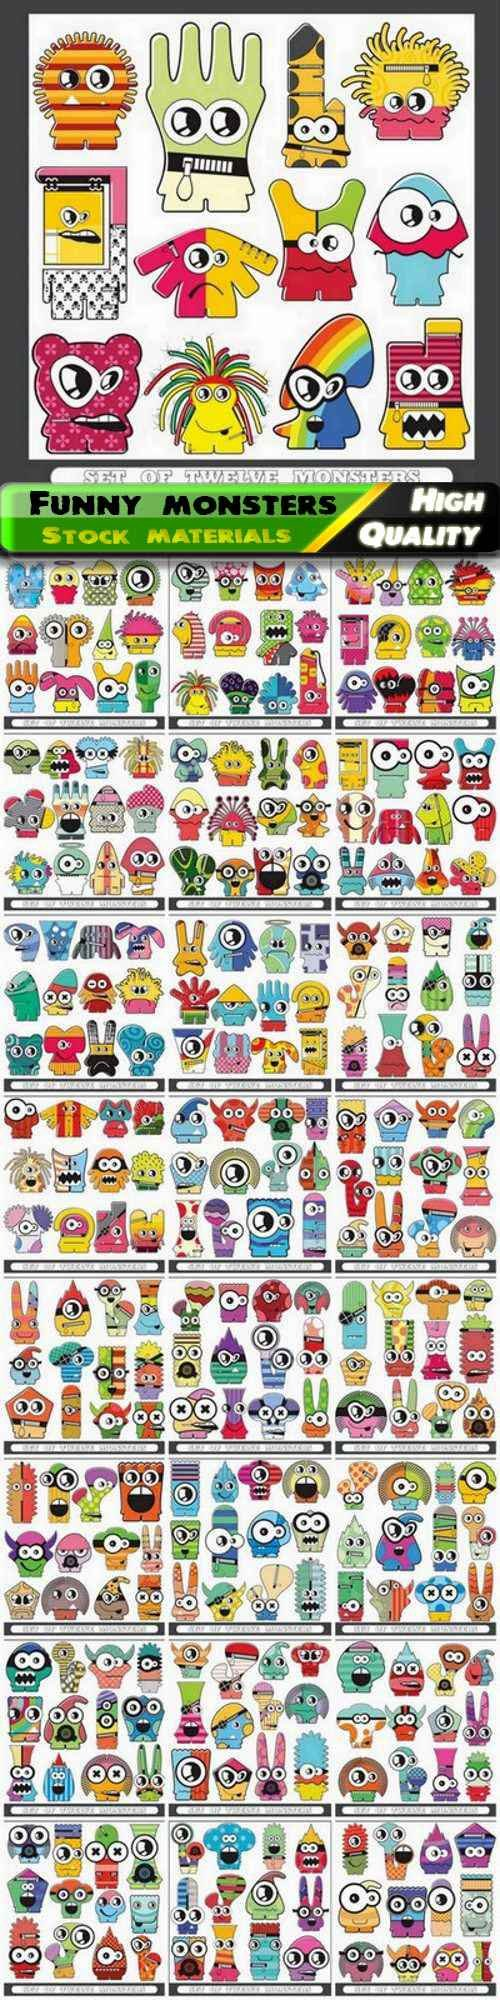 Funny and scary cartoon monster 25 Eps